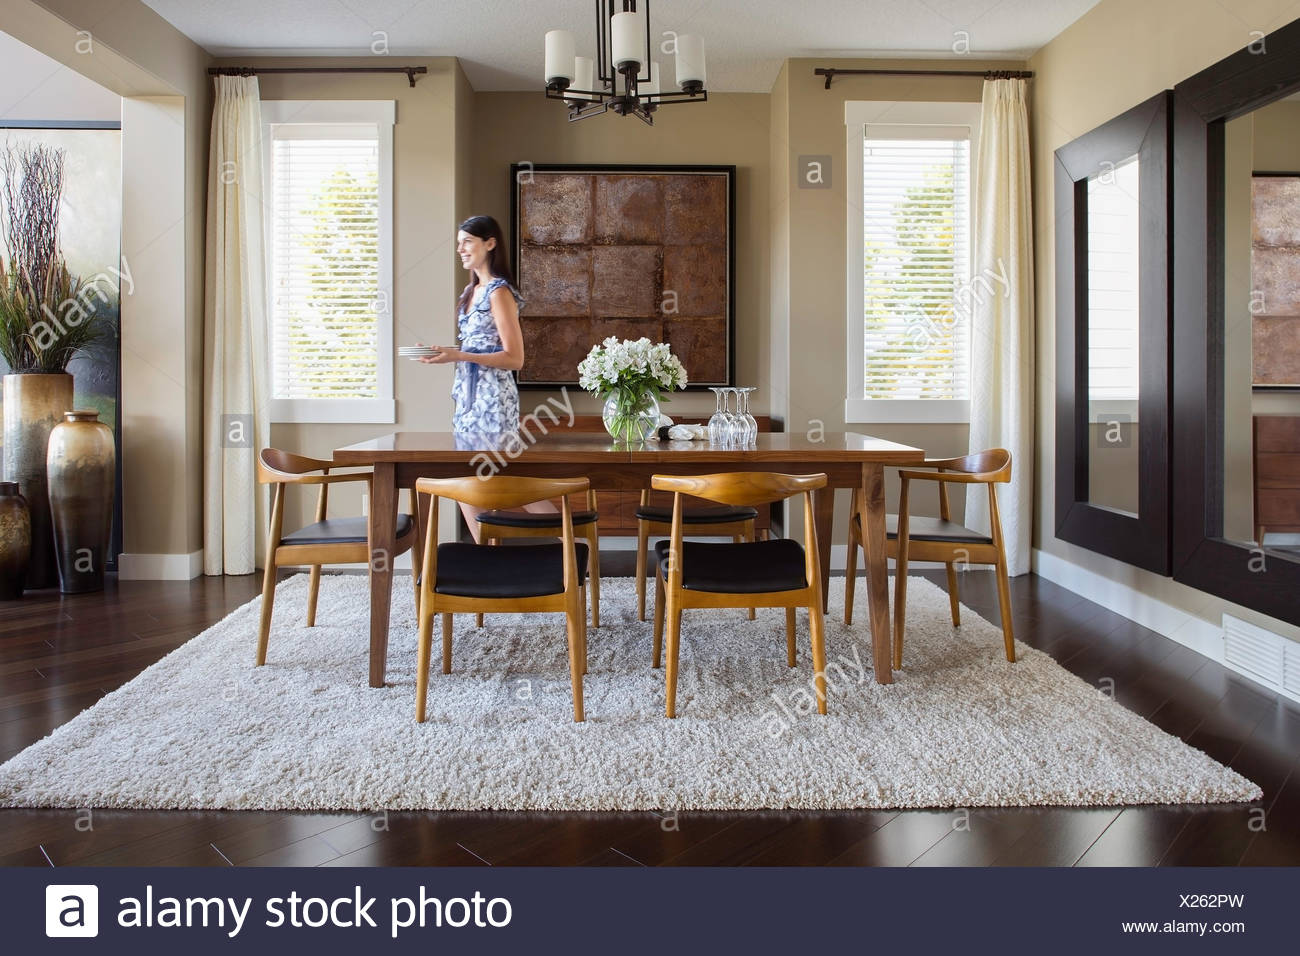 . Woman setting table in dining room Stock Photo  276729121   Alamy